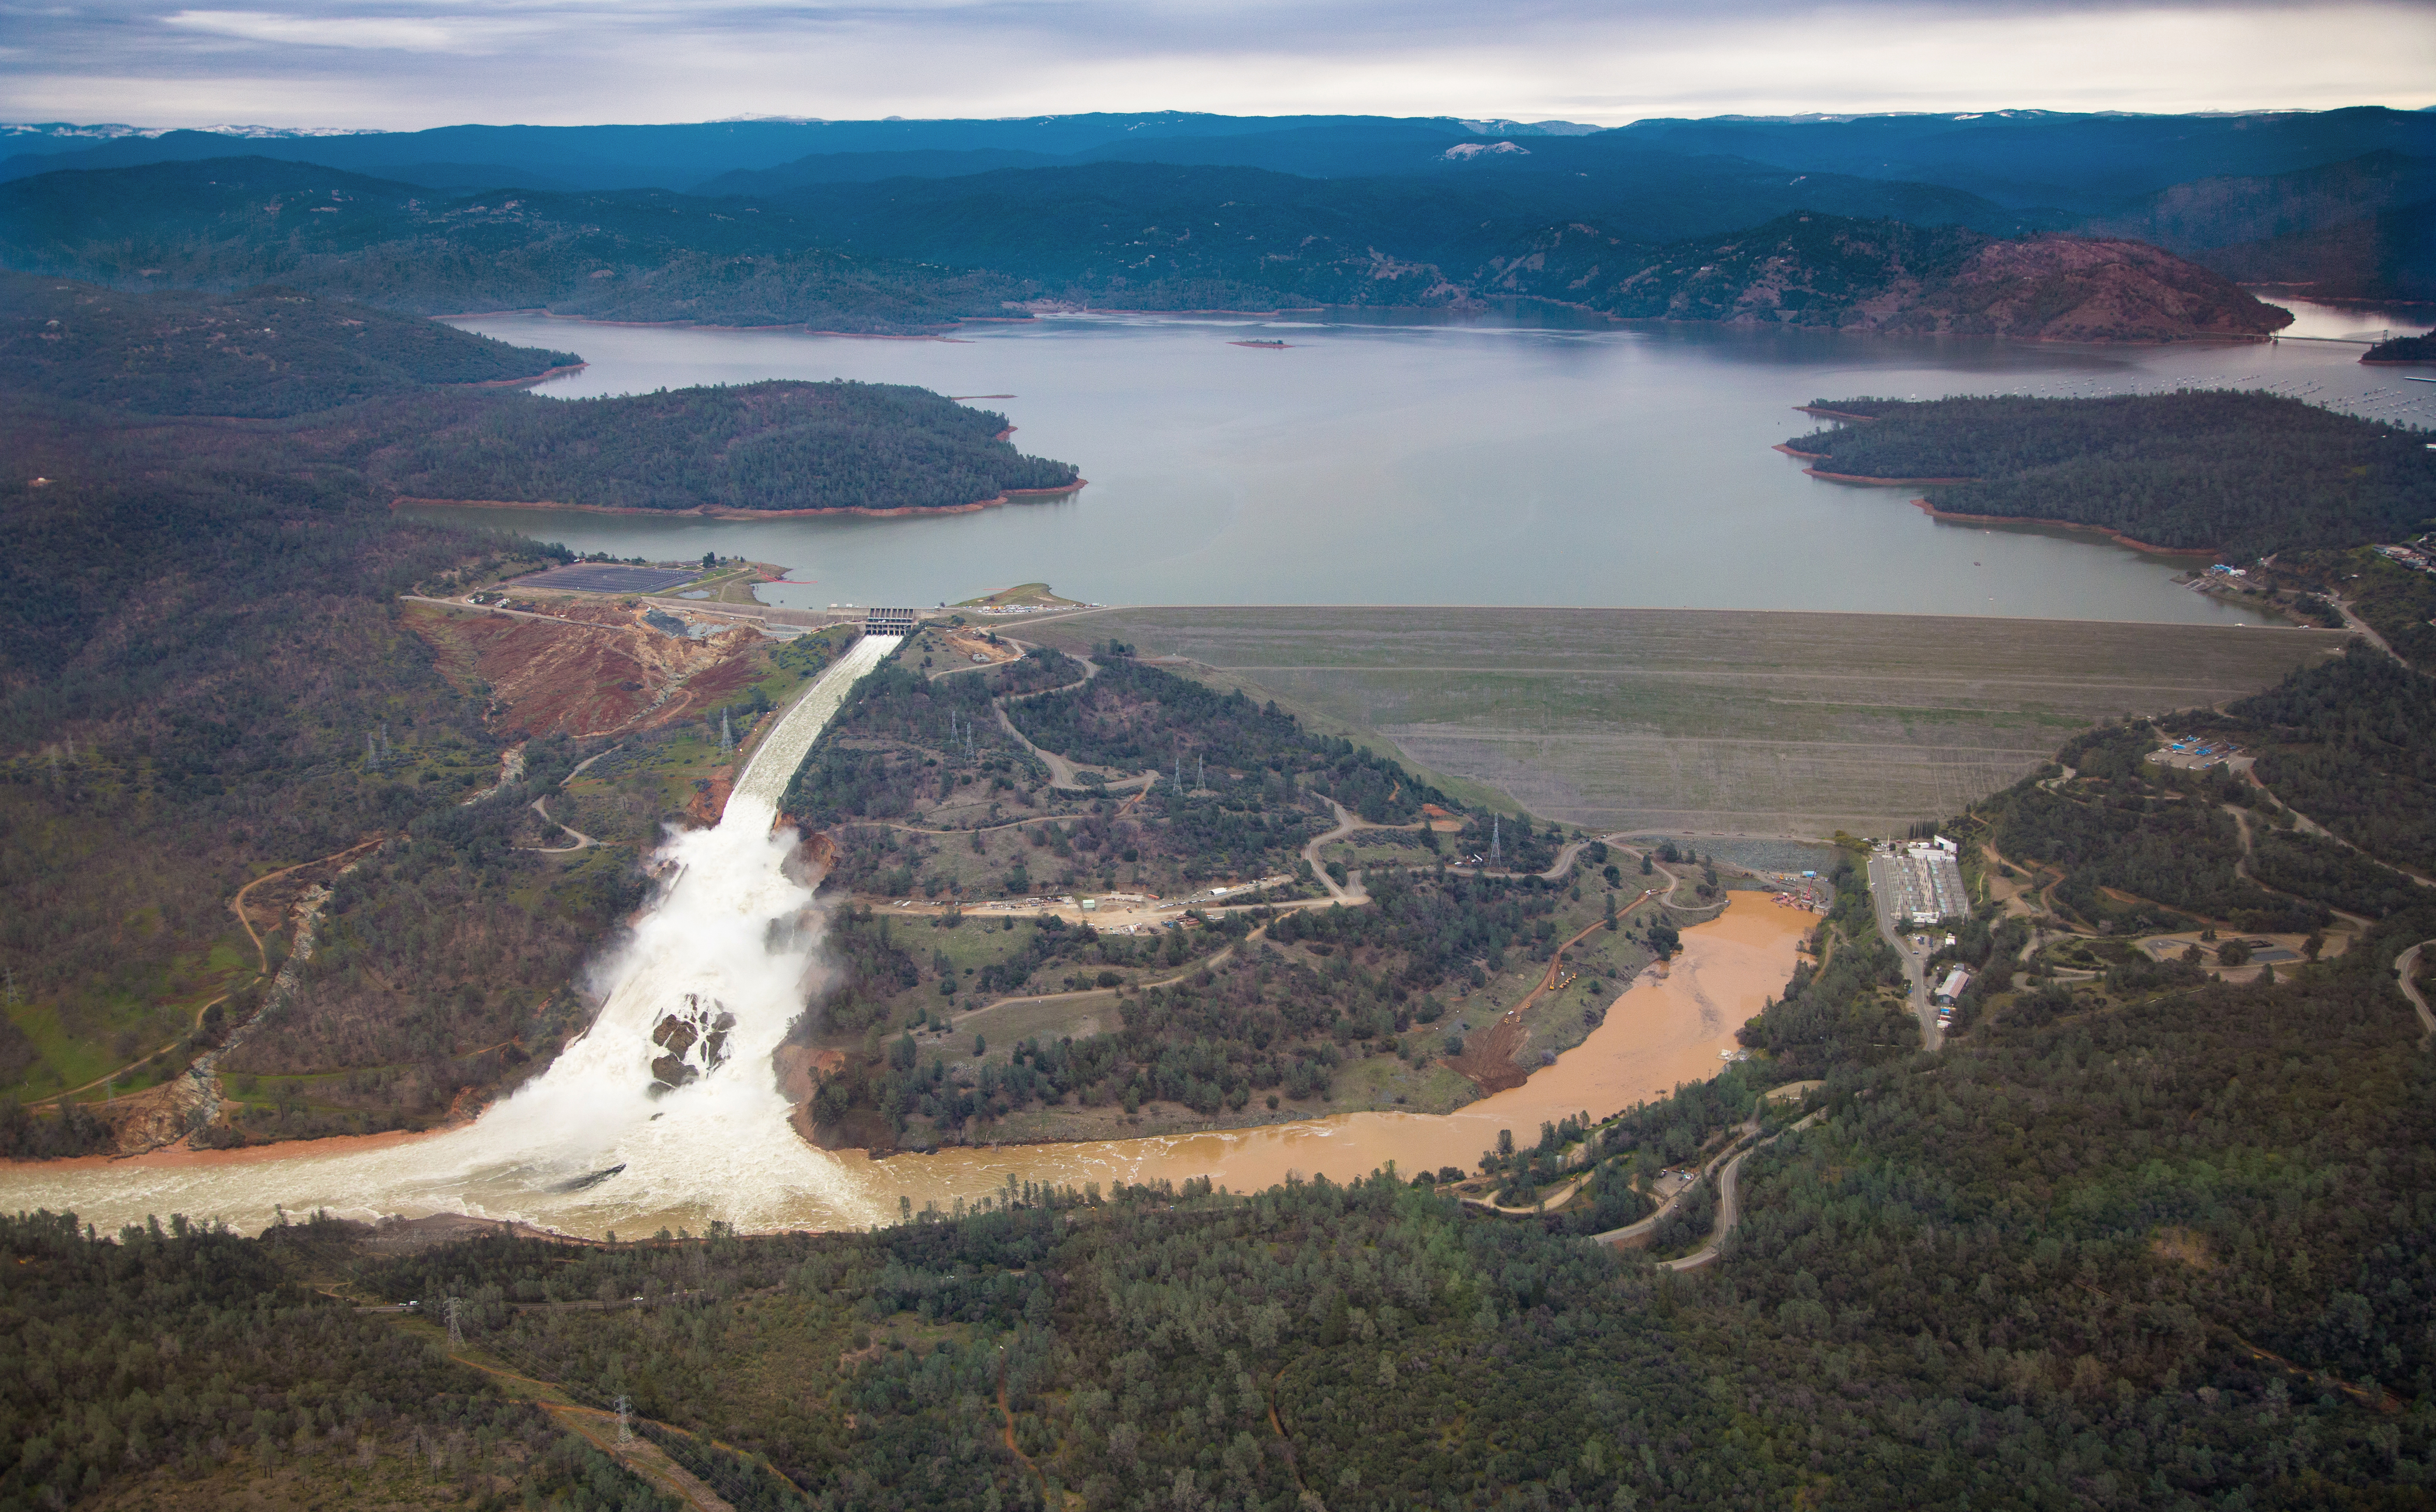 File:Oroville Dam wide view 15 February 2017 jpg - Wikimedia Commons